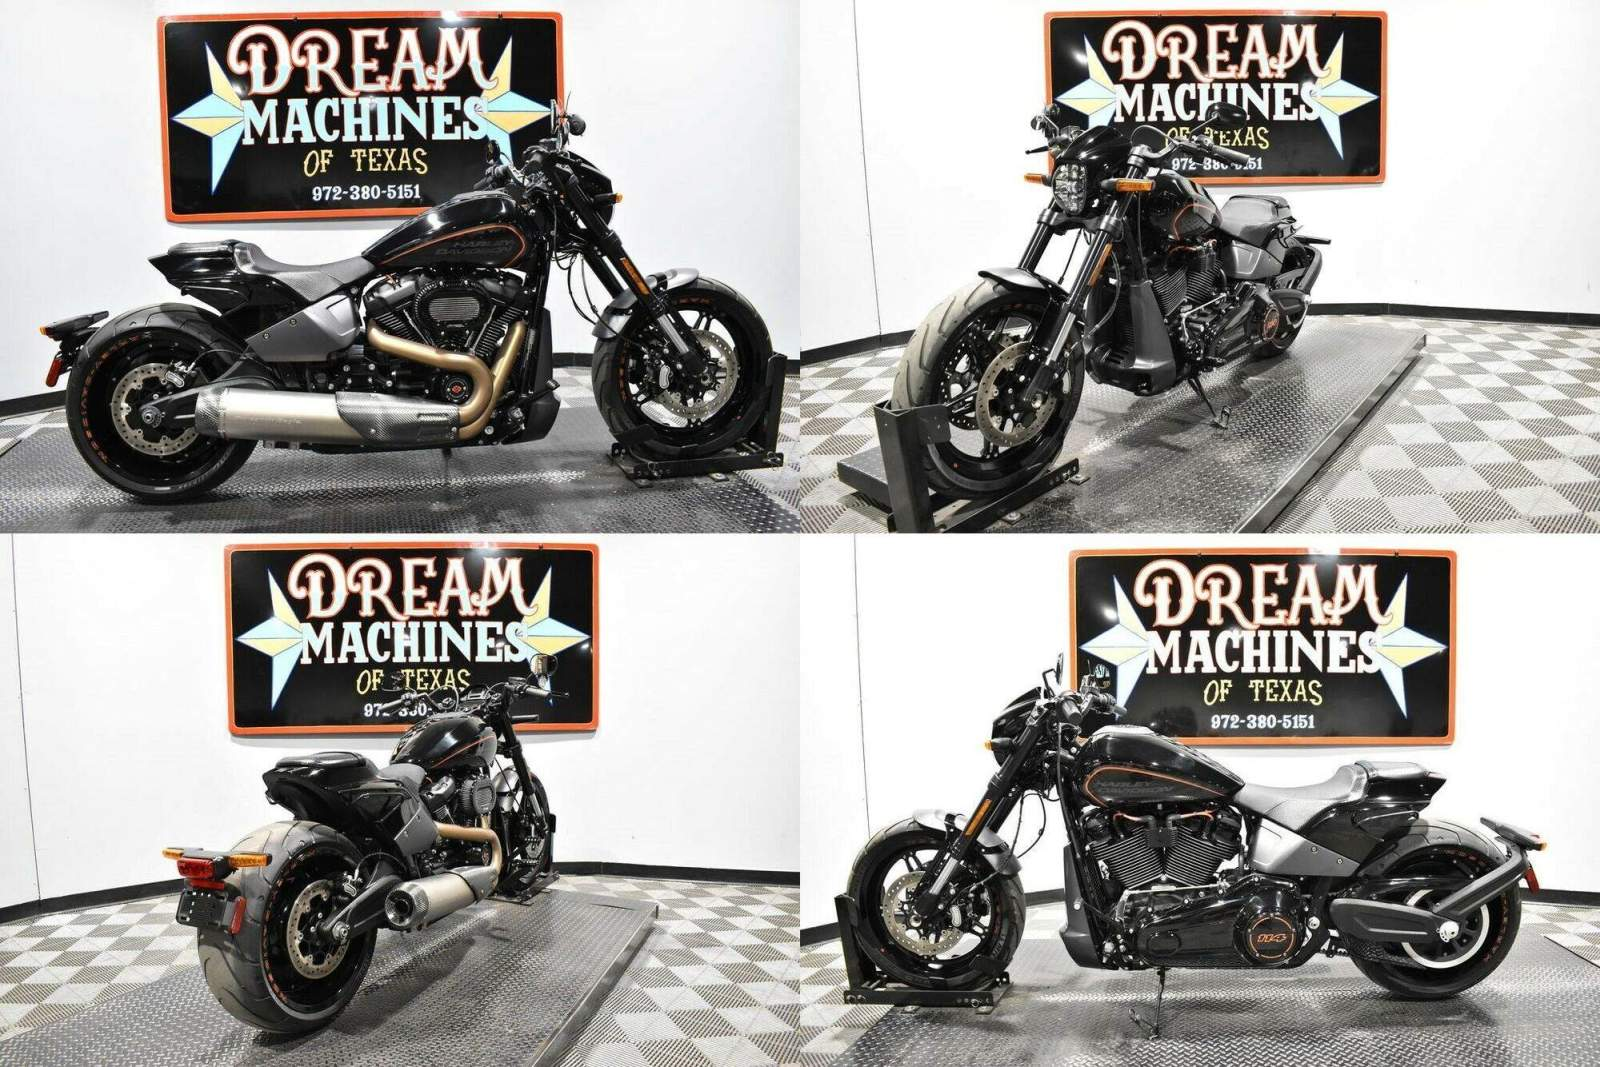 2019 Harley-Davidson FXDRS - FXDR 114 Black used for sale craigslist